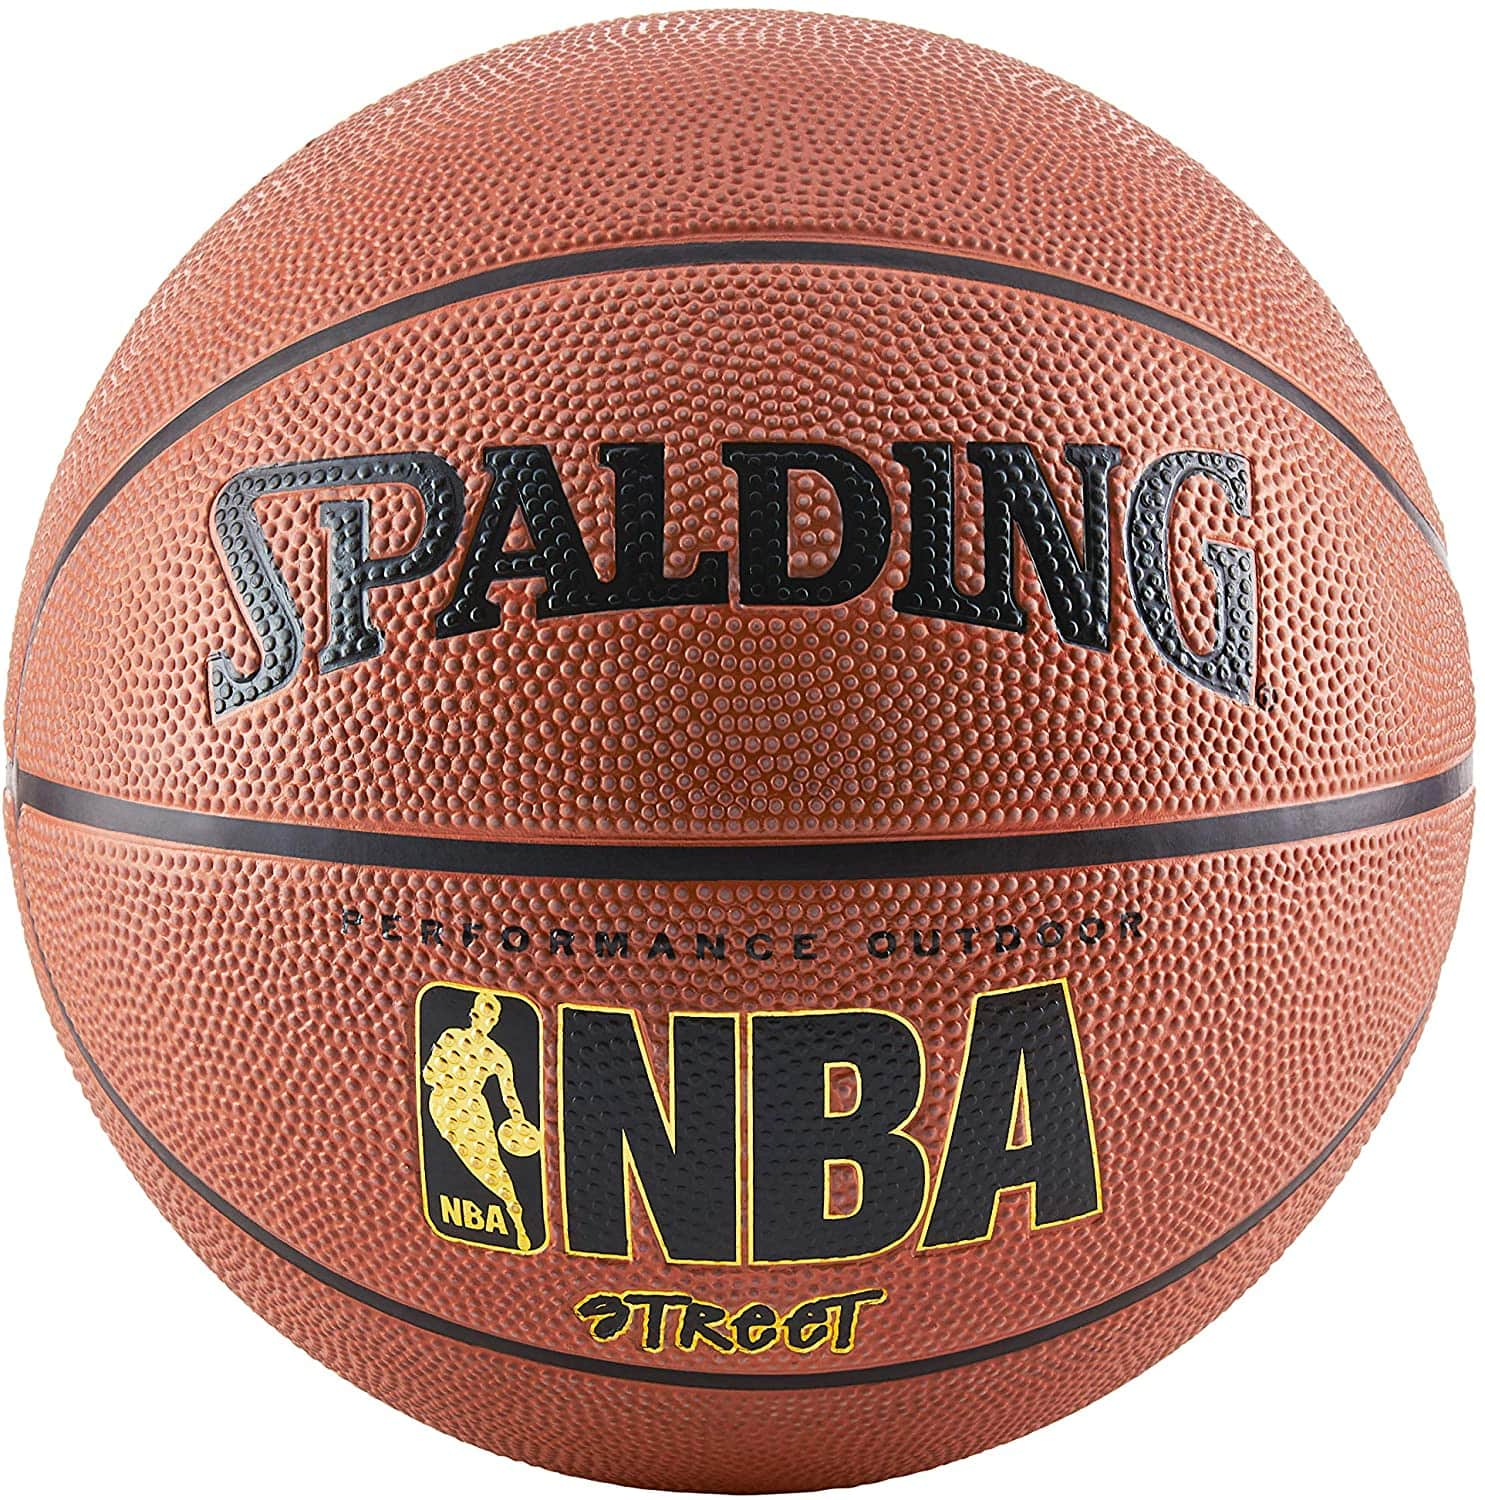 """Spalding NBA Street Outdoor Basketball (29.5"""", Official Size 7) $8.10 + Free S&H w/ Prime or orders $25+ ~ Amazon"""